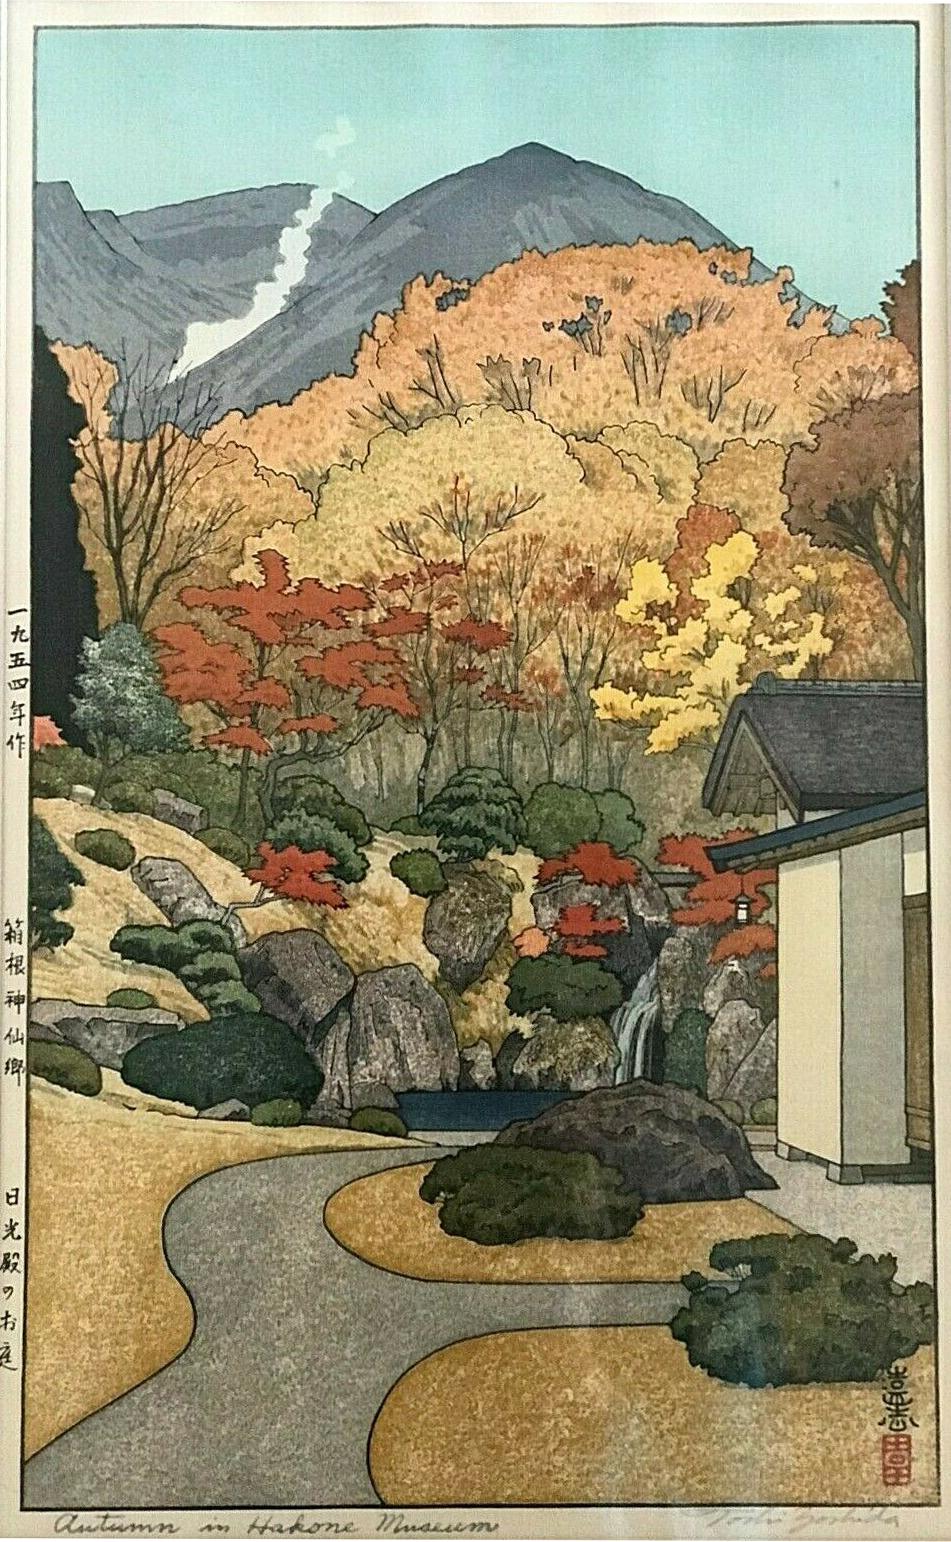 Autumn in Hakone Museum by Toshi Yoshida